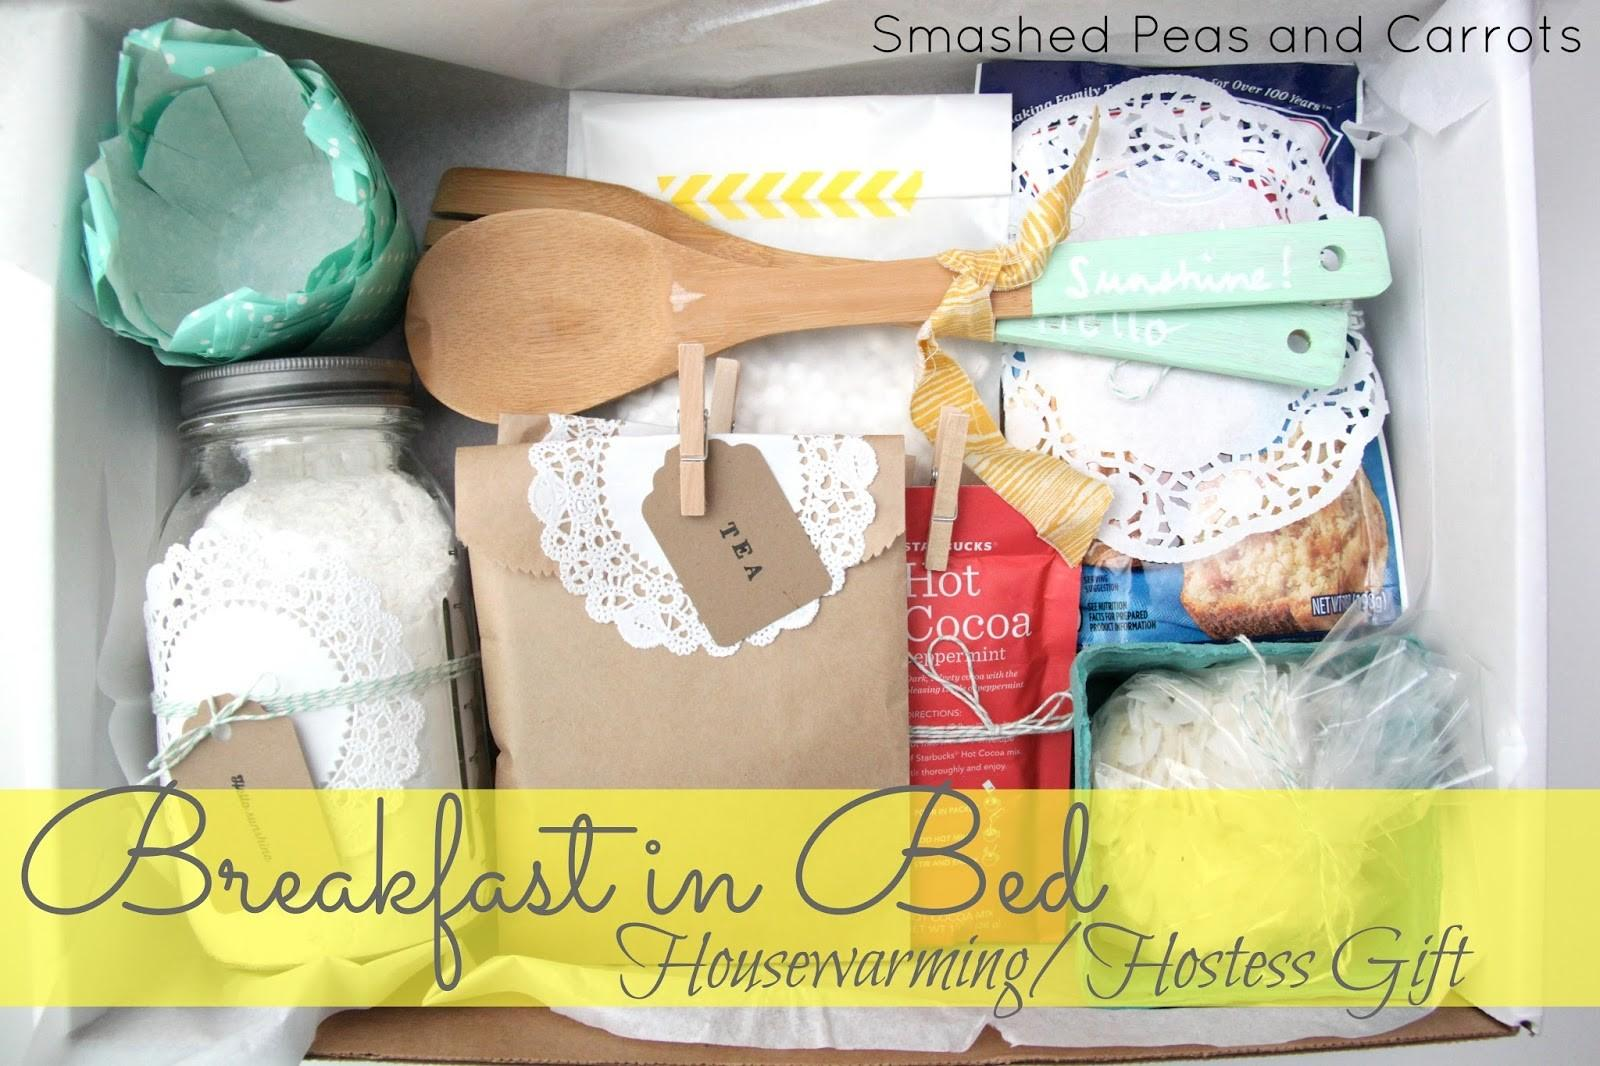 Breakfast Bed Housewarming Hostess Gift Idea Smashed